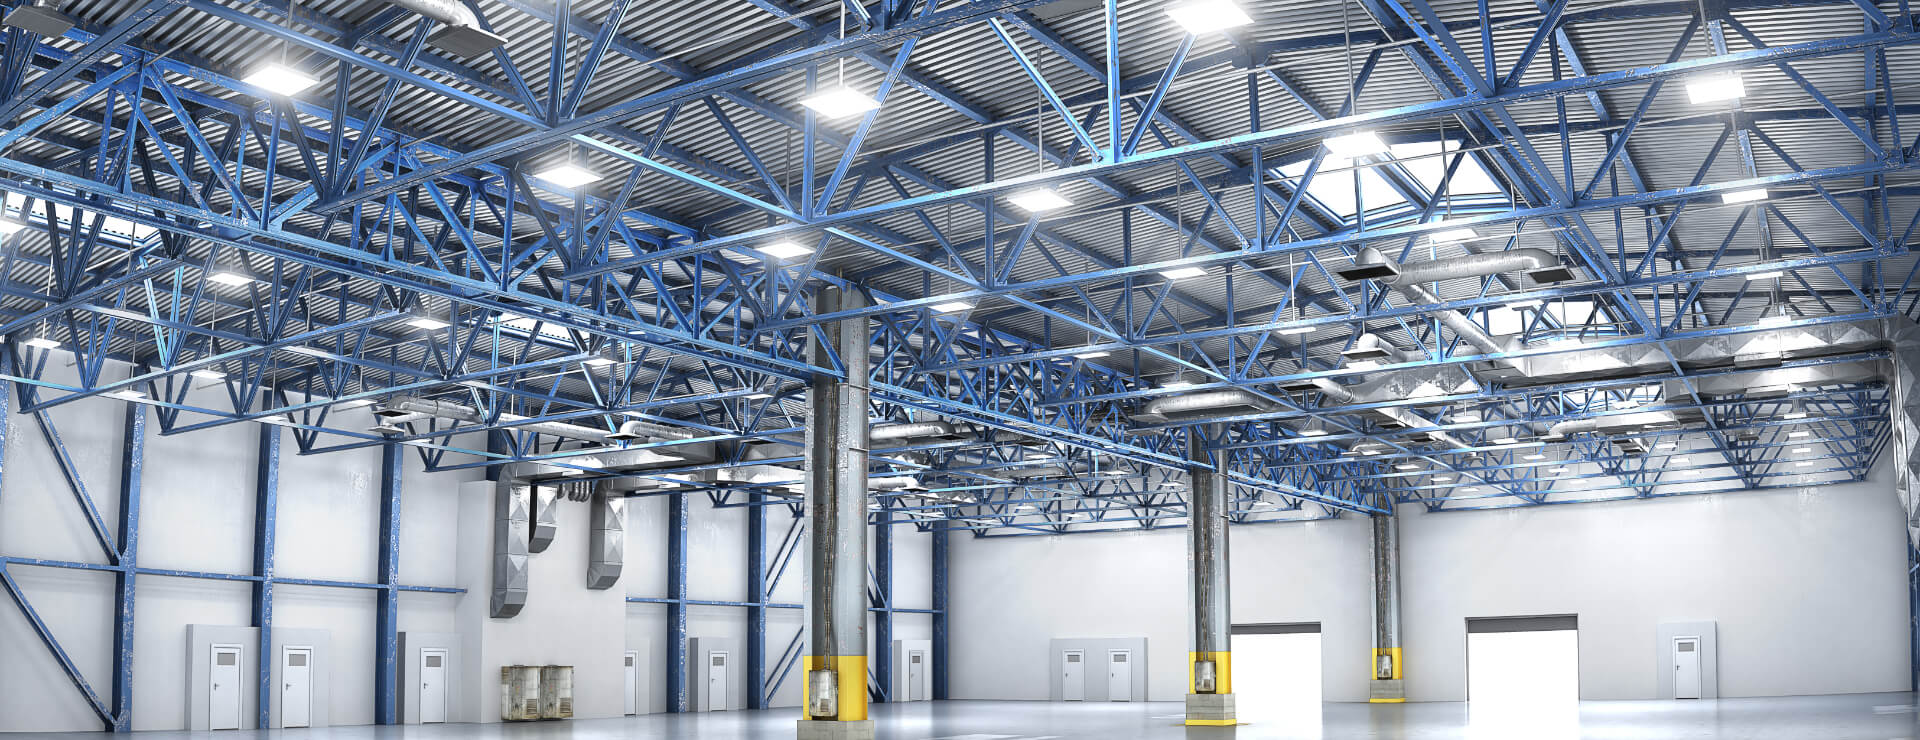 LED-Hallenbeleuchtung-store-and-more-Highbay